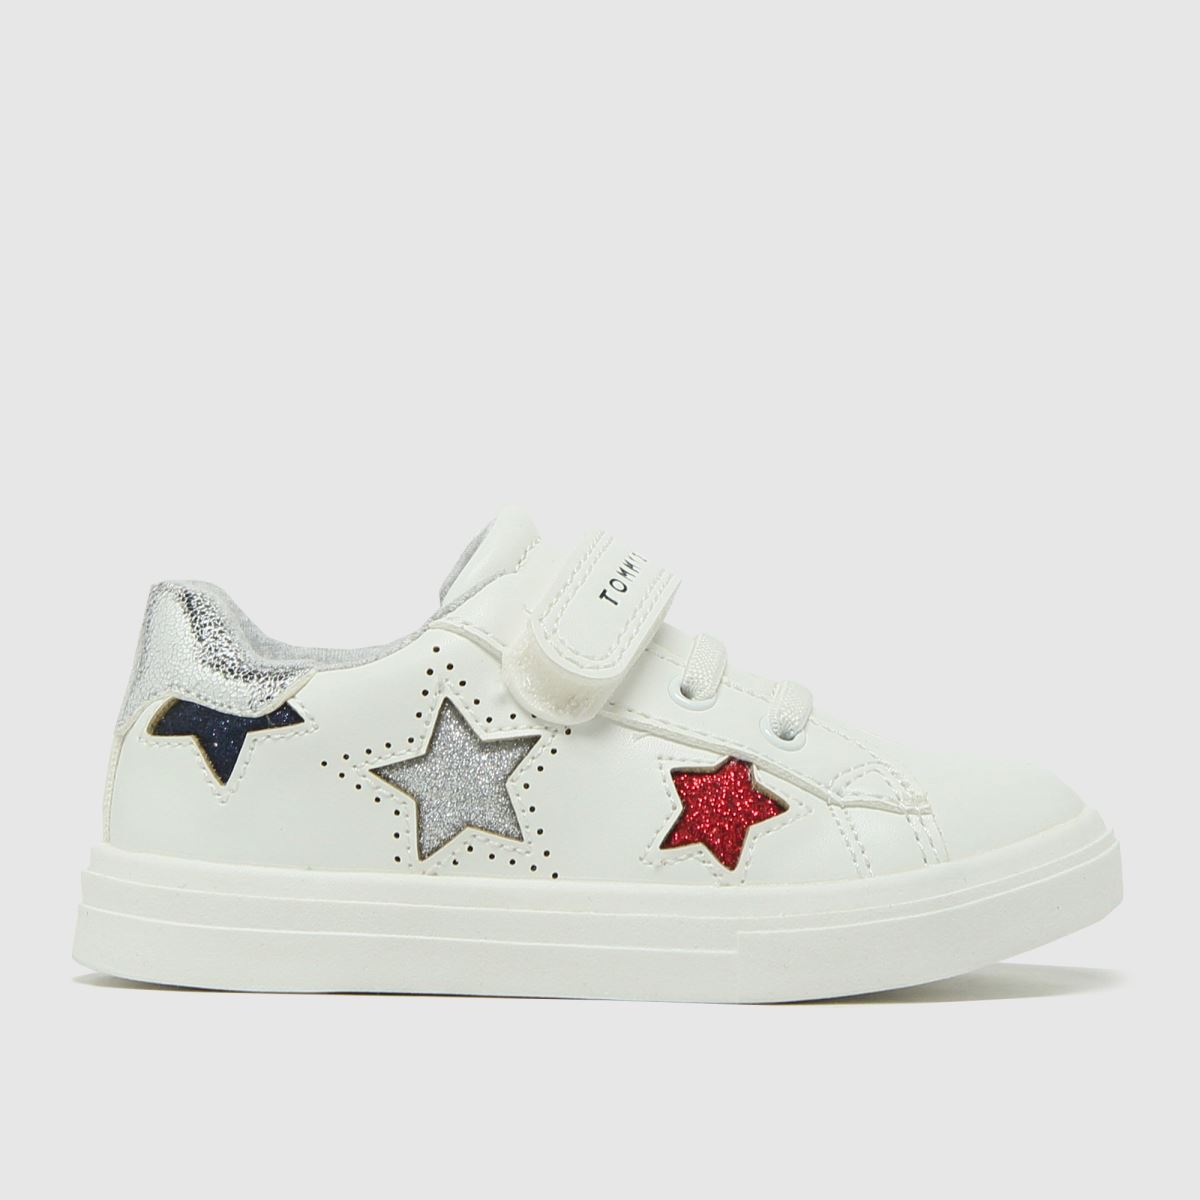 Tommy Hilfiger White & Silver Low Cut Velcro Sneaker Trainers To